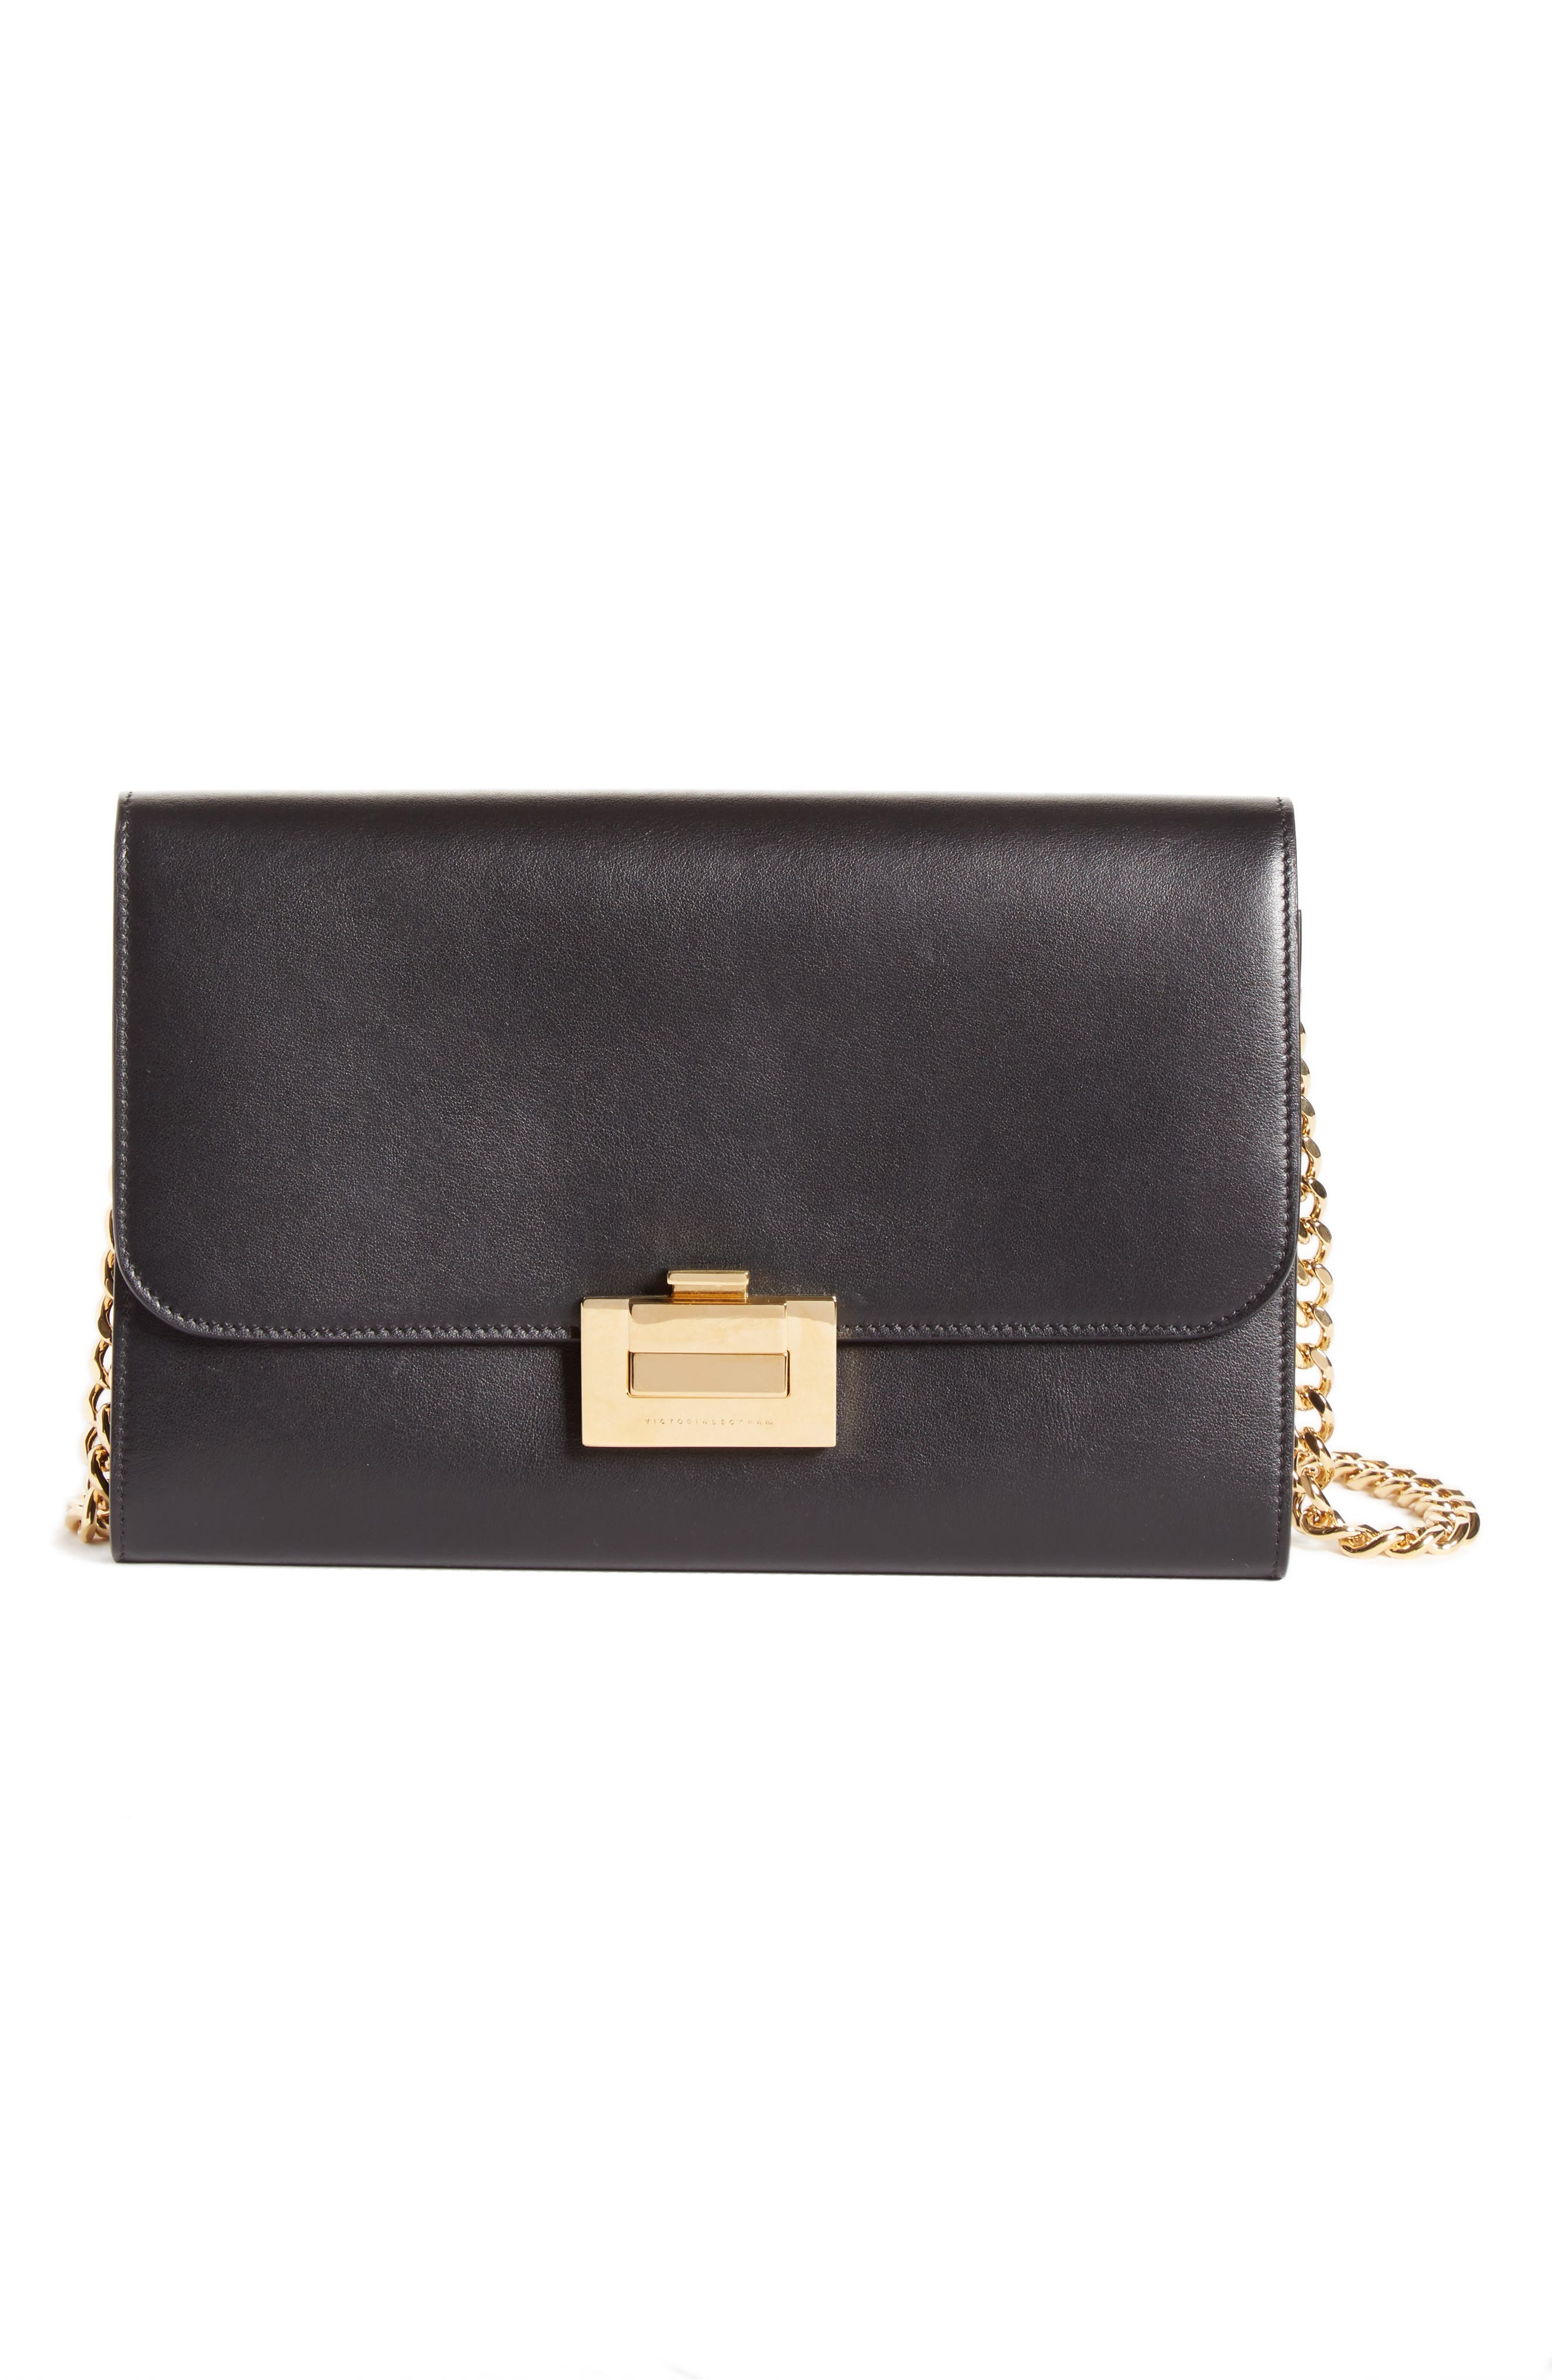 VICTORIA BECKHAM, Leather Wallet on a Chain, Main thumbnail 1, color, BLACK